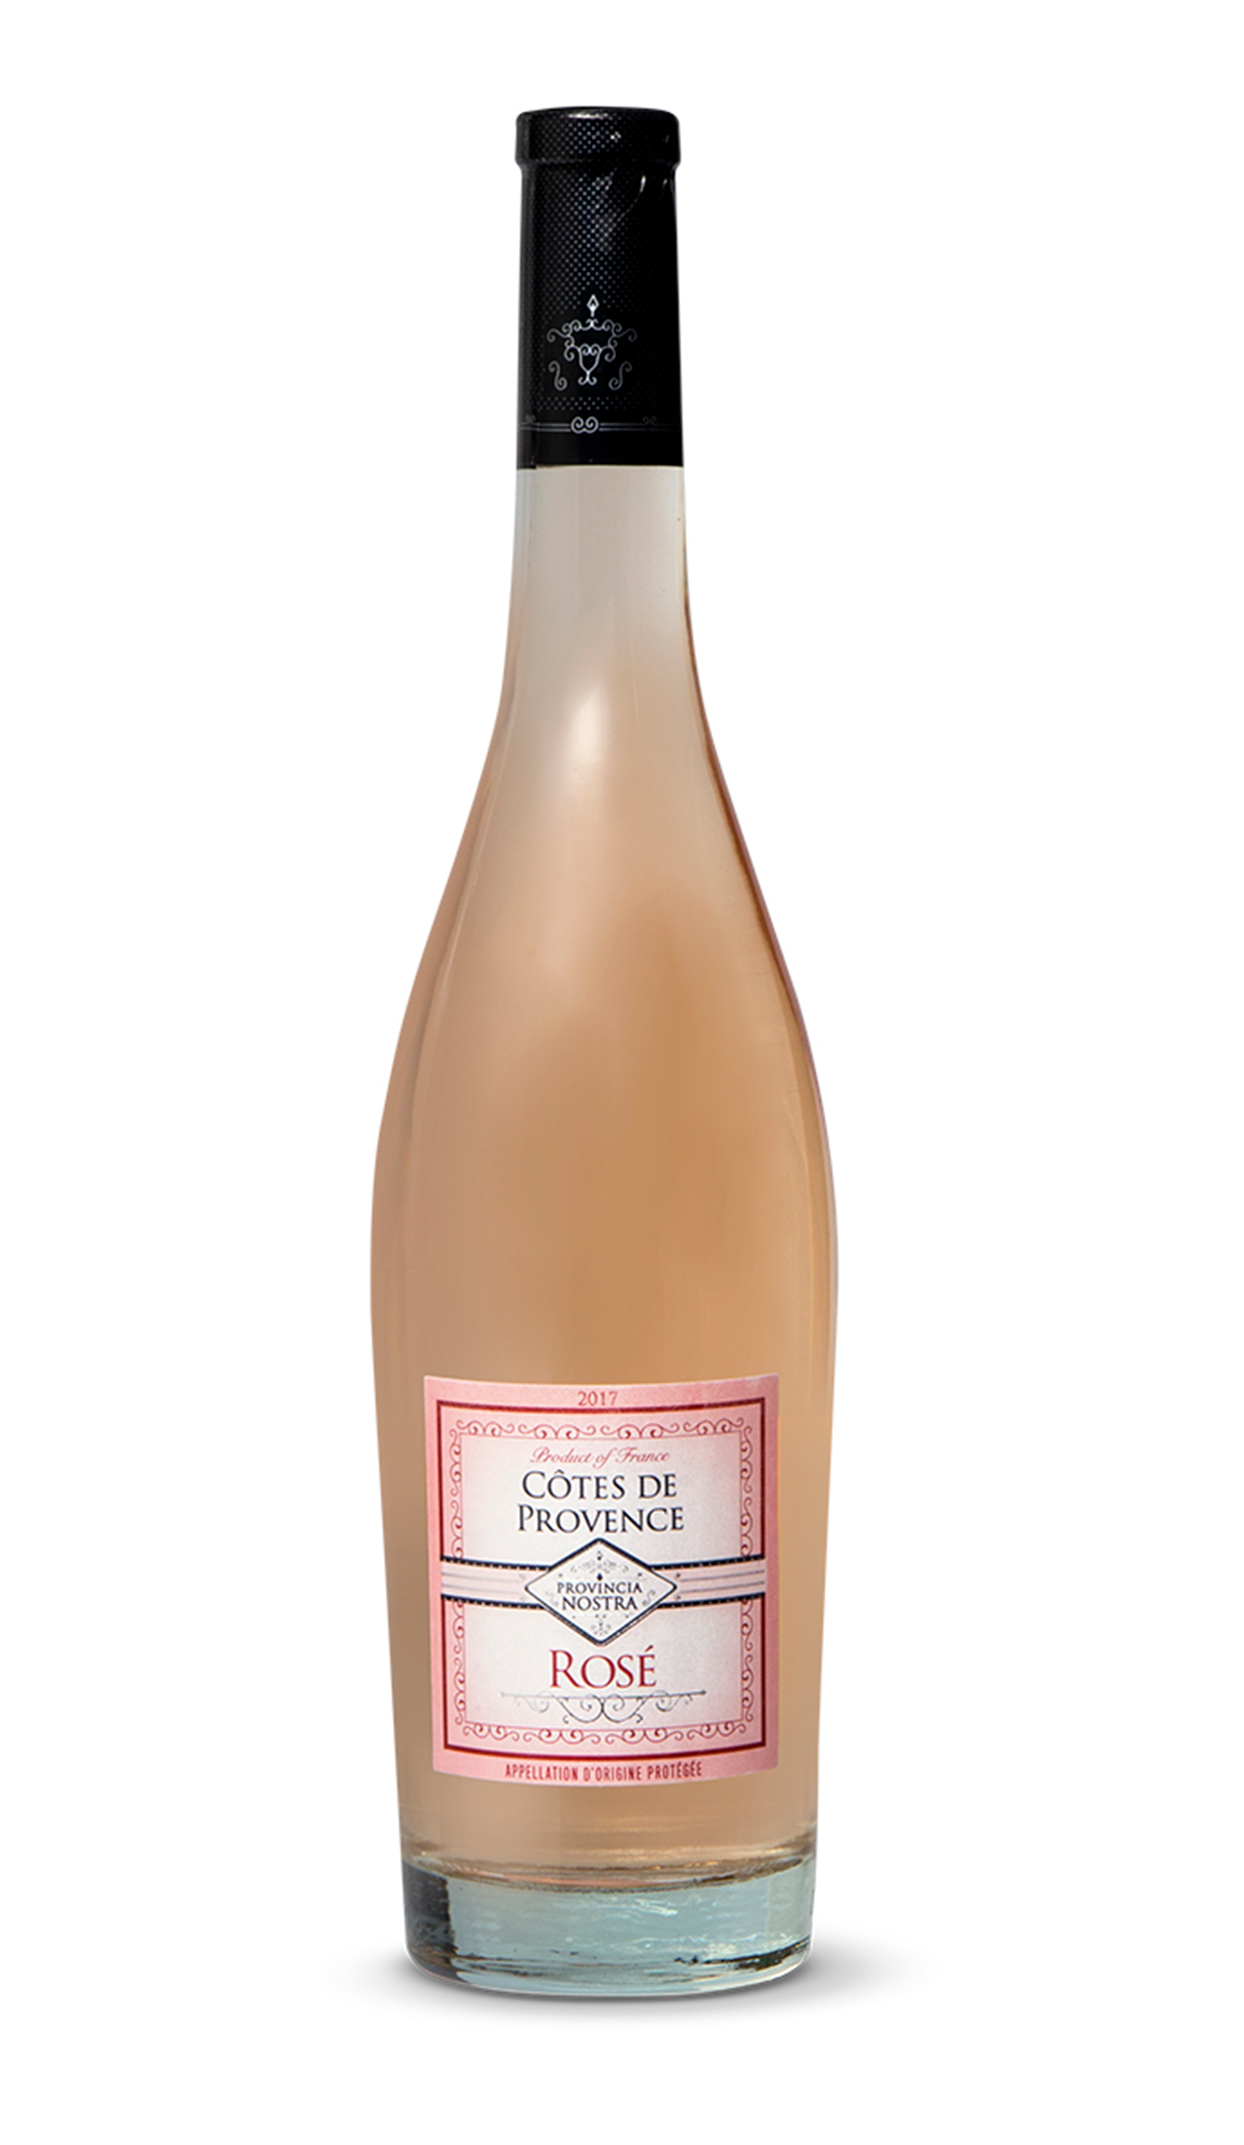 Aldi Cotes de Provence Rose on white background